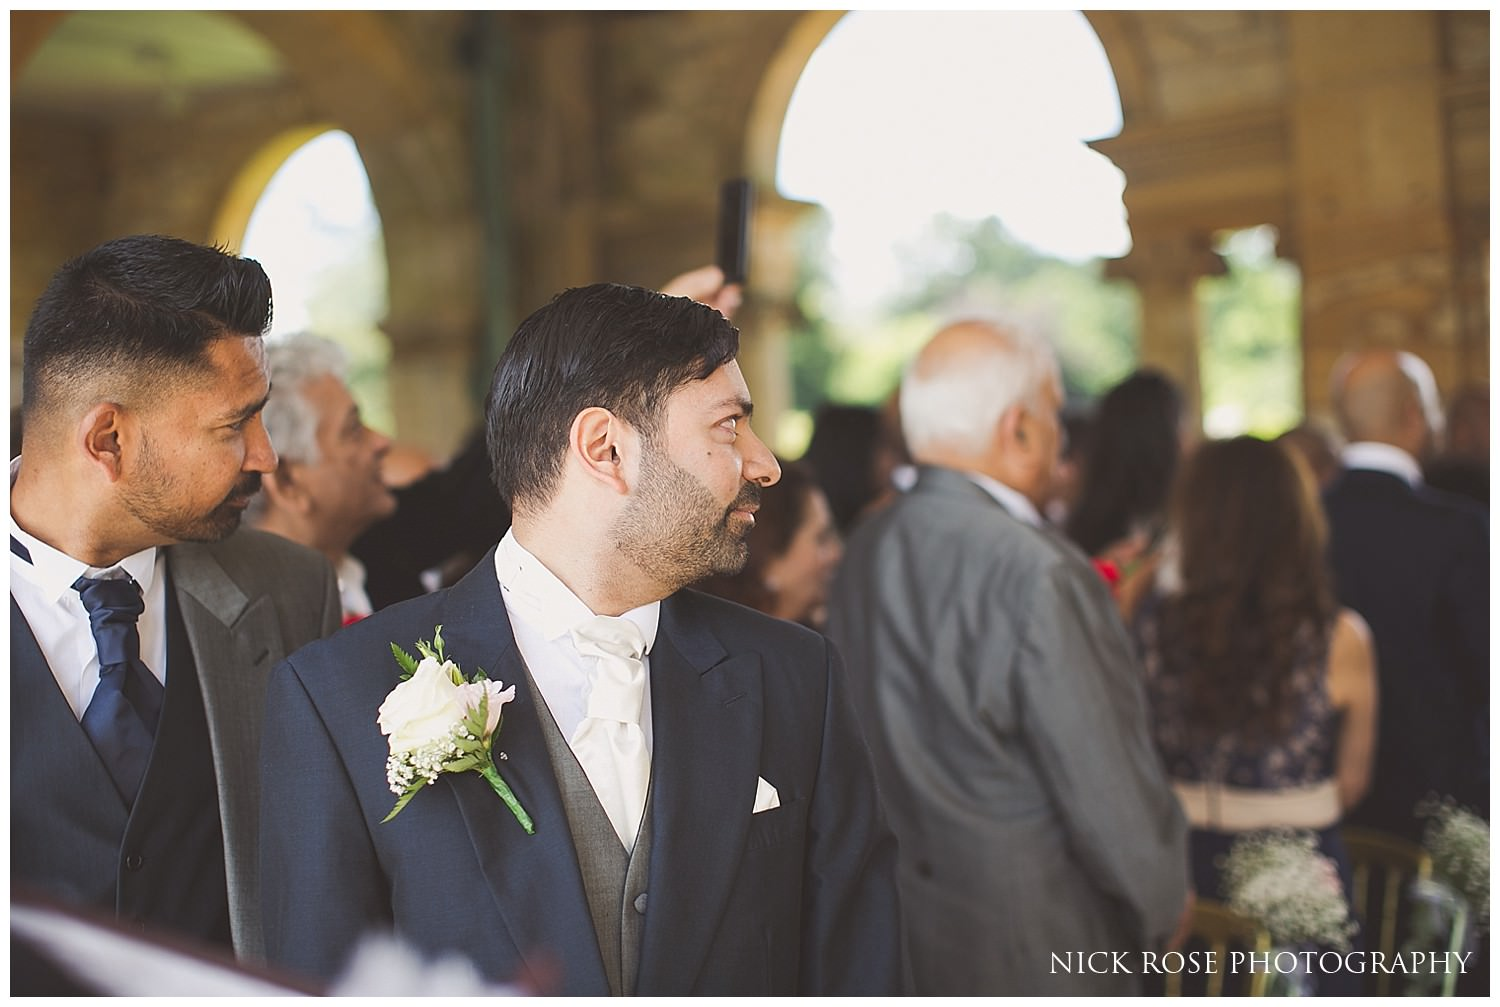 Groom's reaction to seeing his bride walking up the aisle at Hever Castle